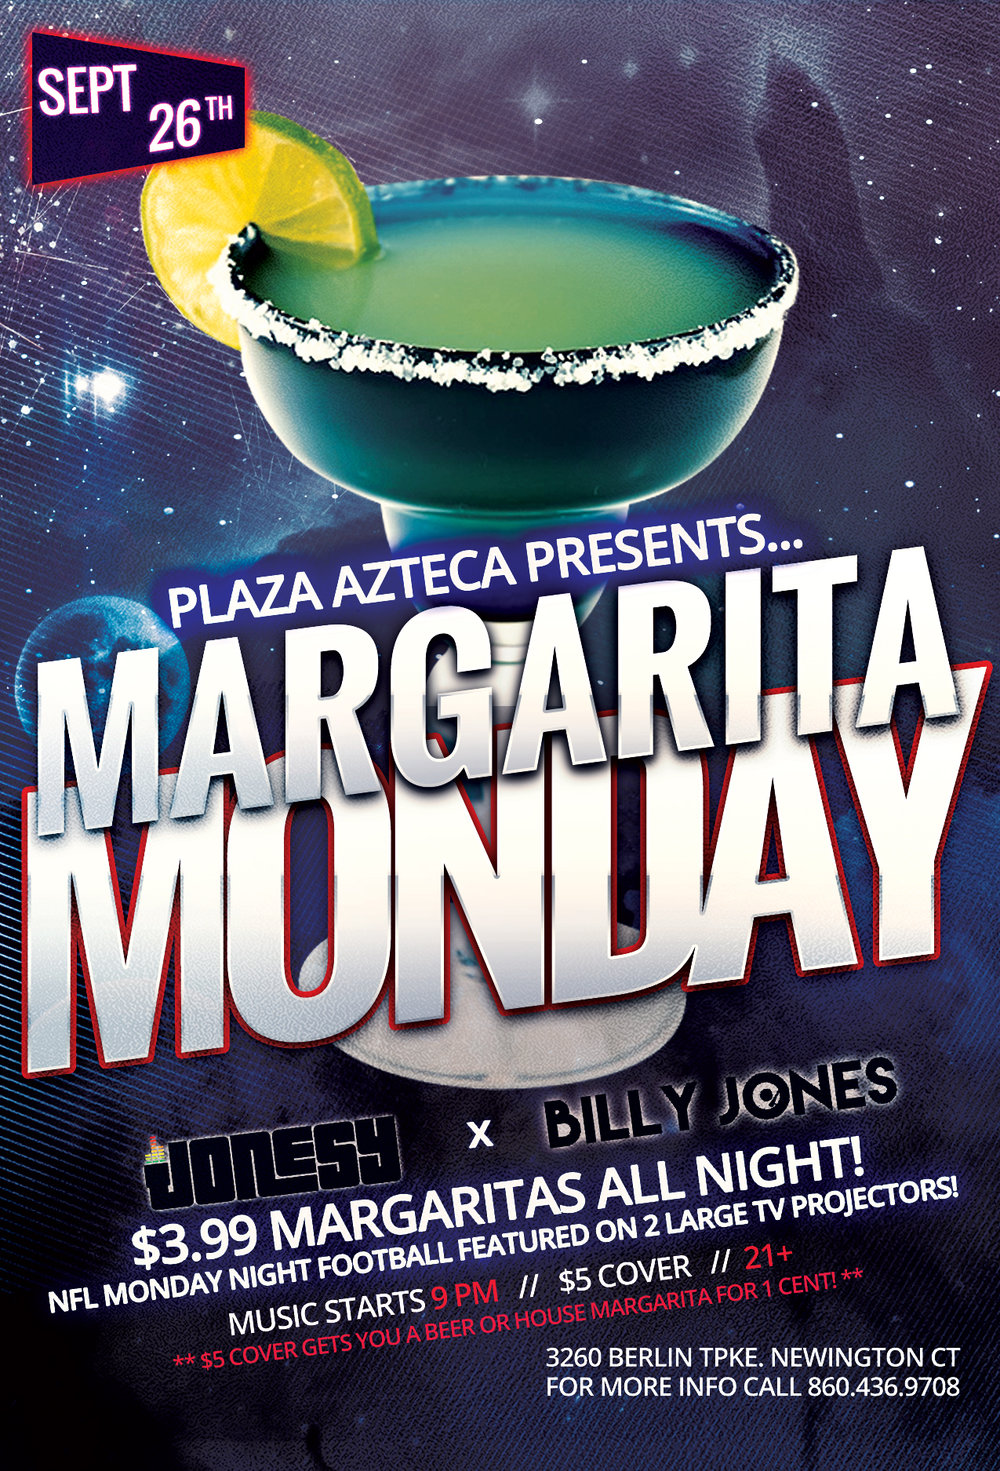 Monday, September 26th join me at Plaza Azteca in Newington, CT for Margarita Monday with music by Billy Jones & yours truly 9pm-close.  $3.99 Margaritas all night long!  Meet me there! $5 Cover.